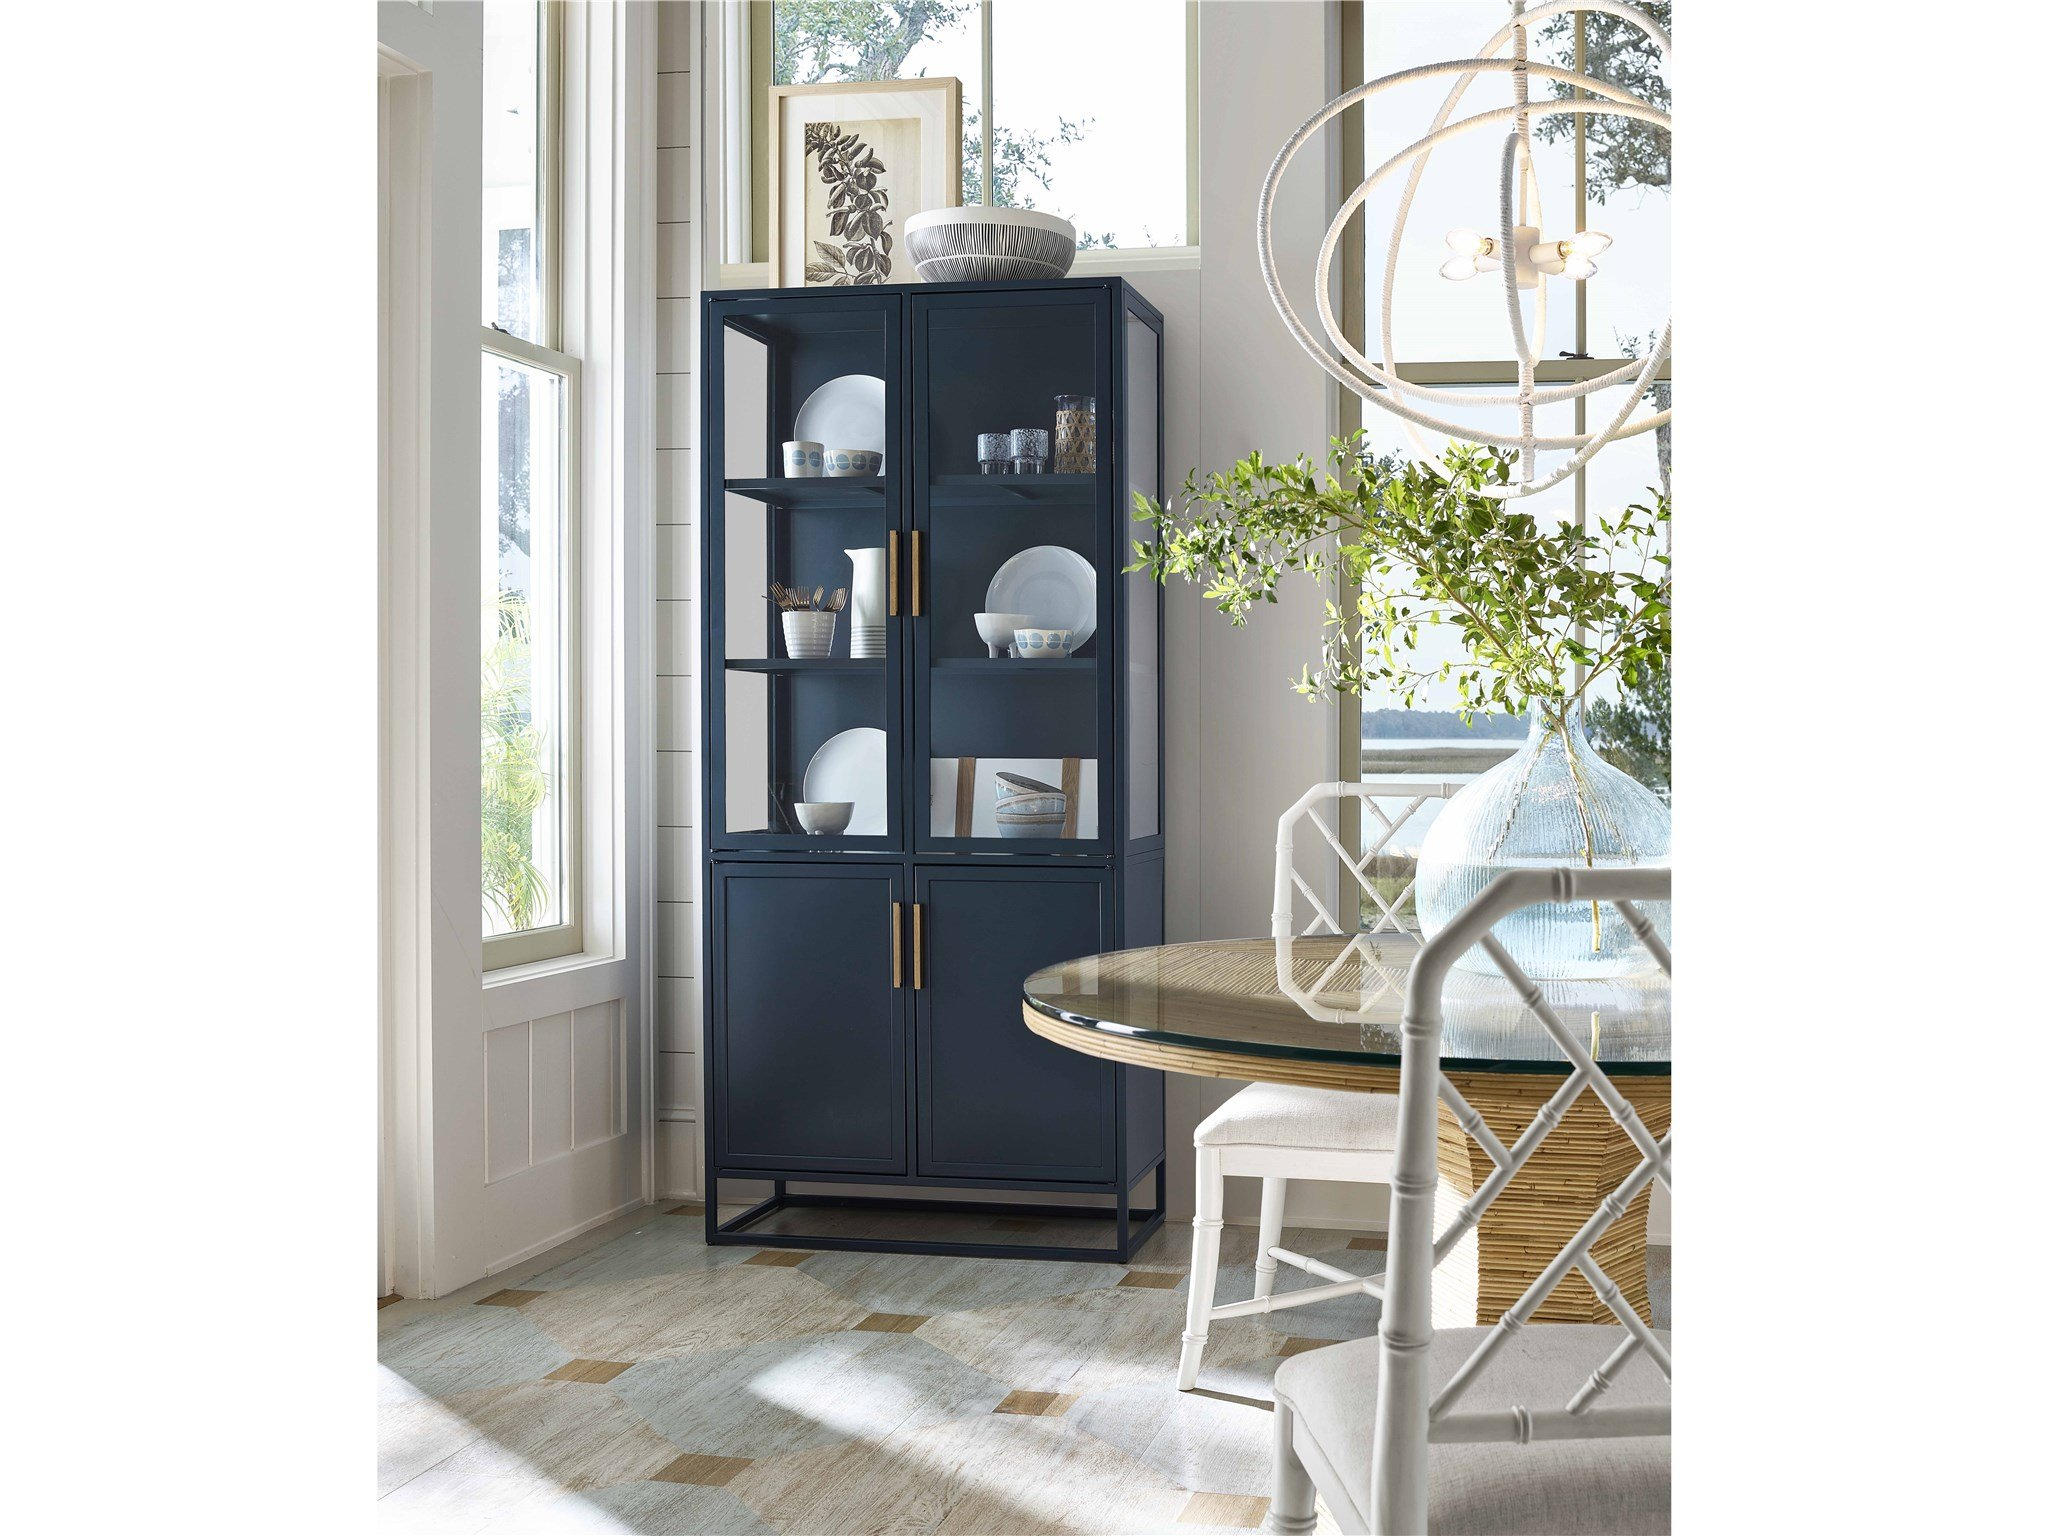 Santorini Tall Metal Kitchen Cabinet